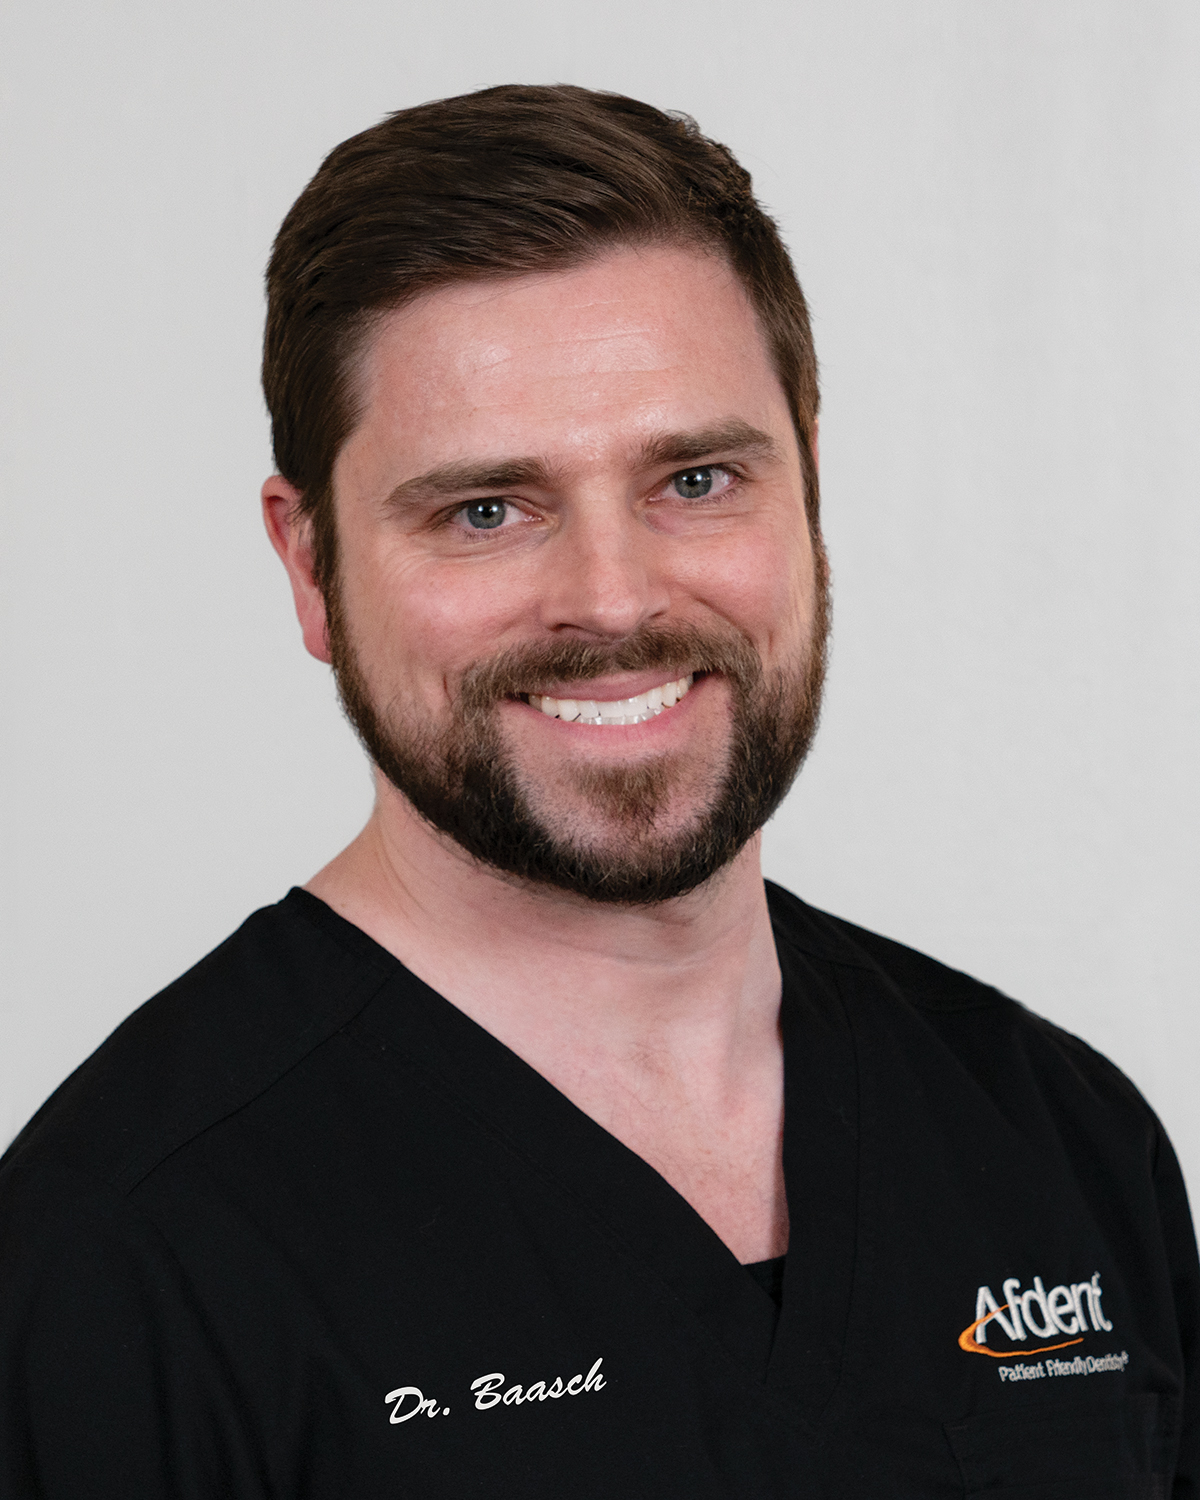 Dr. Bryan Braasch, DDS | Dental Care in Fort Wayne, IN